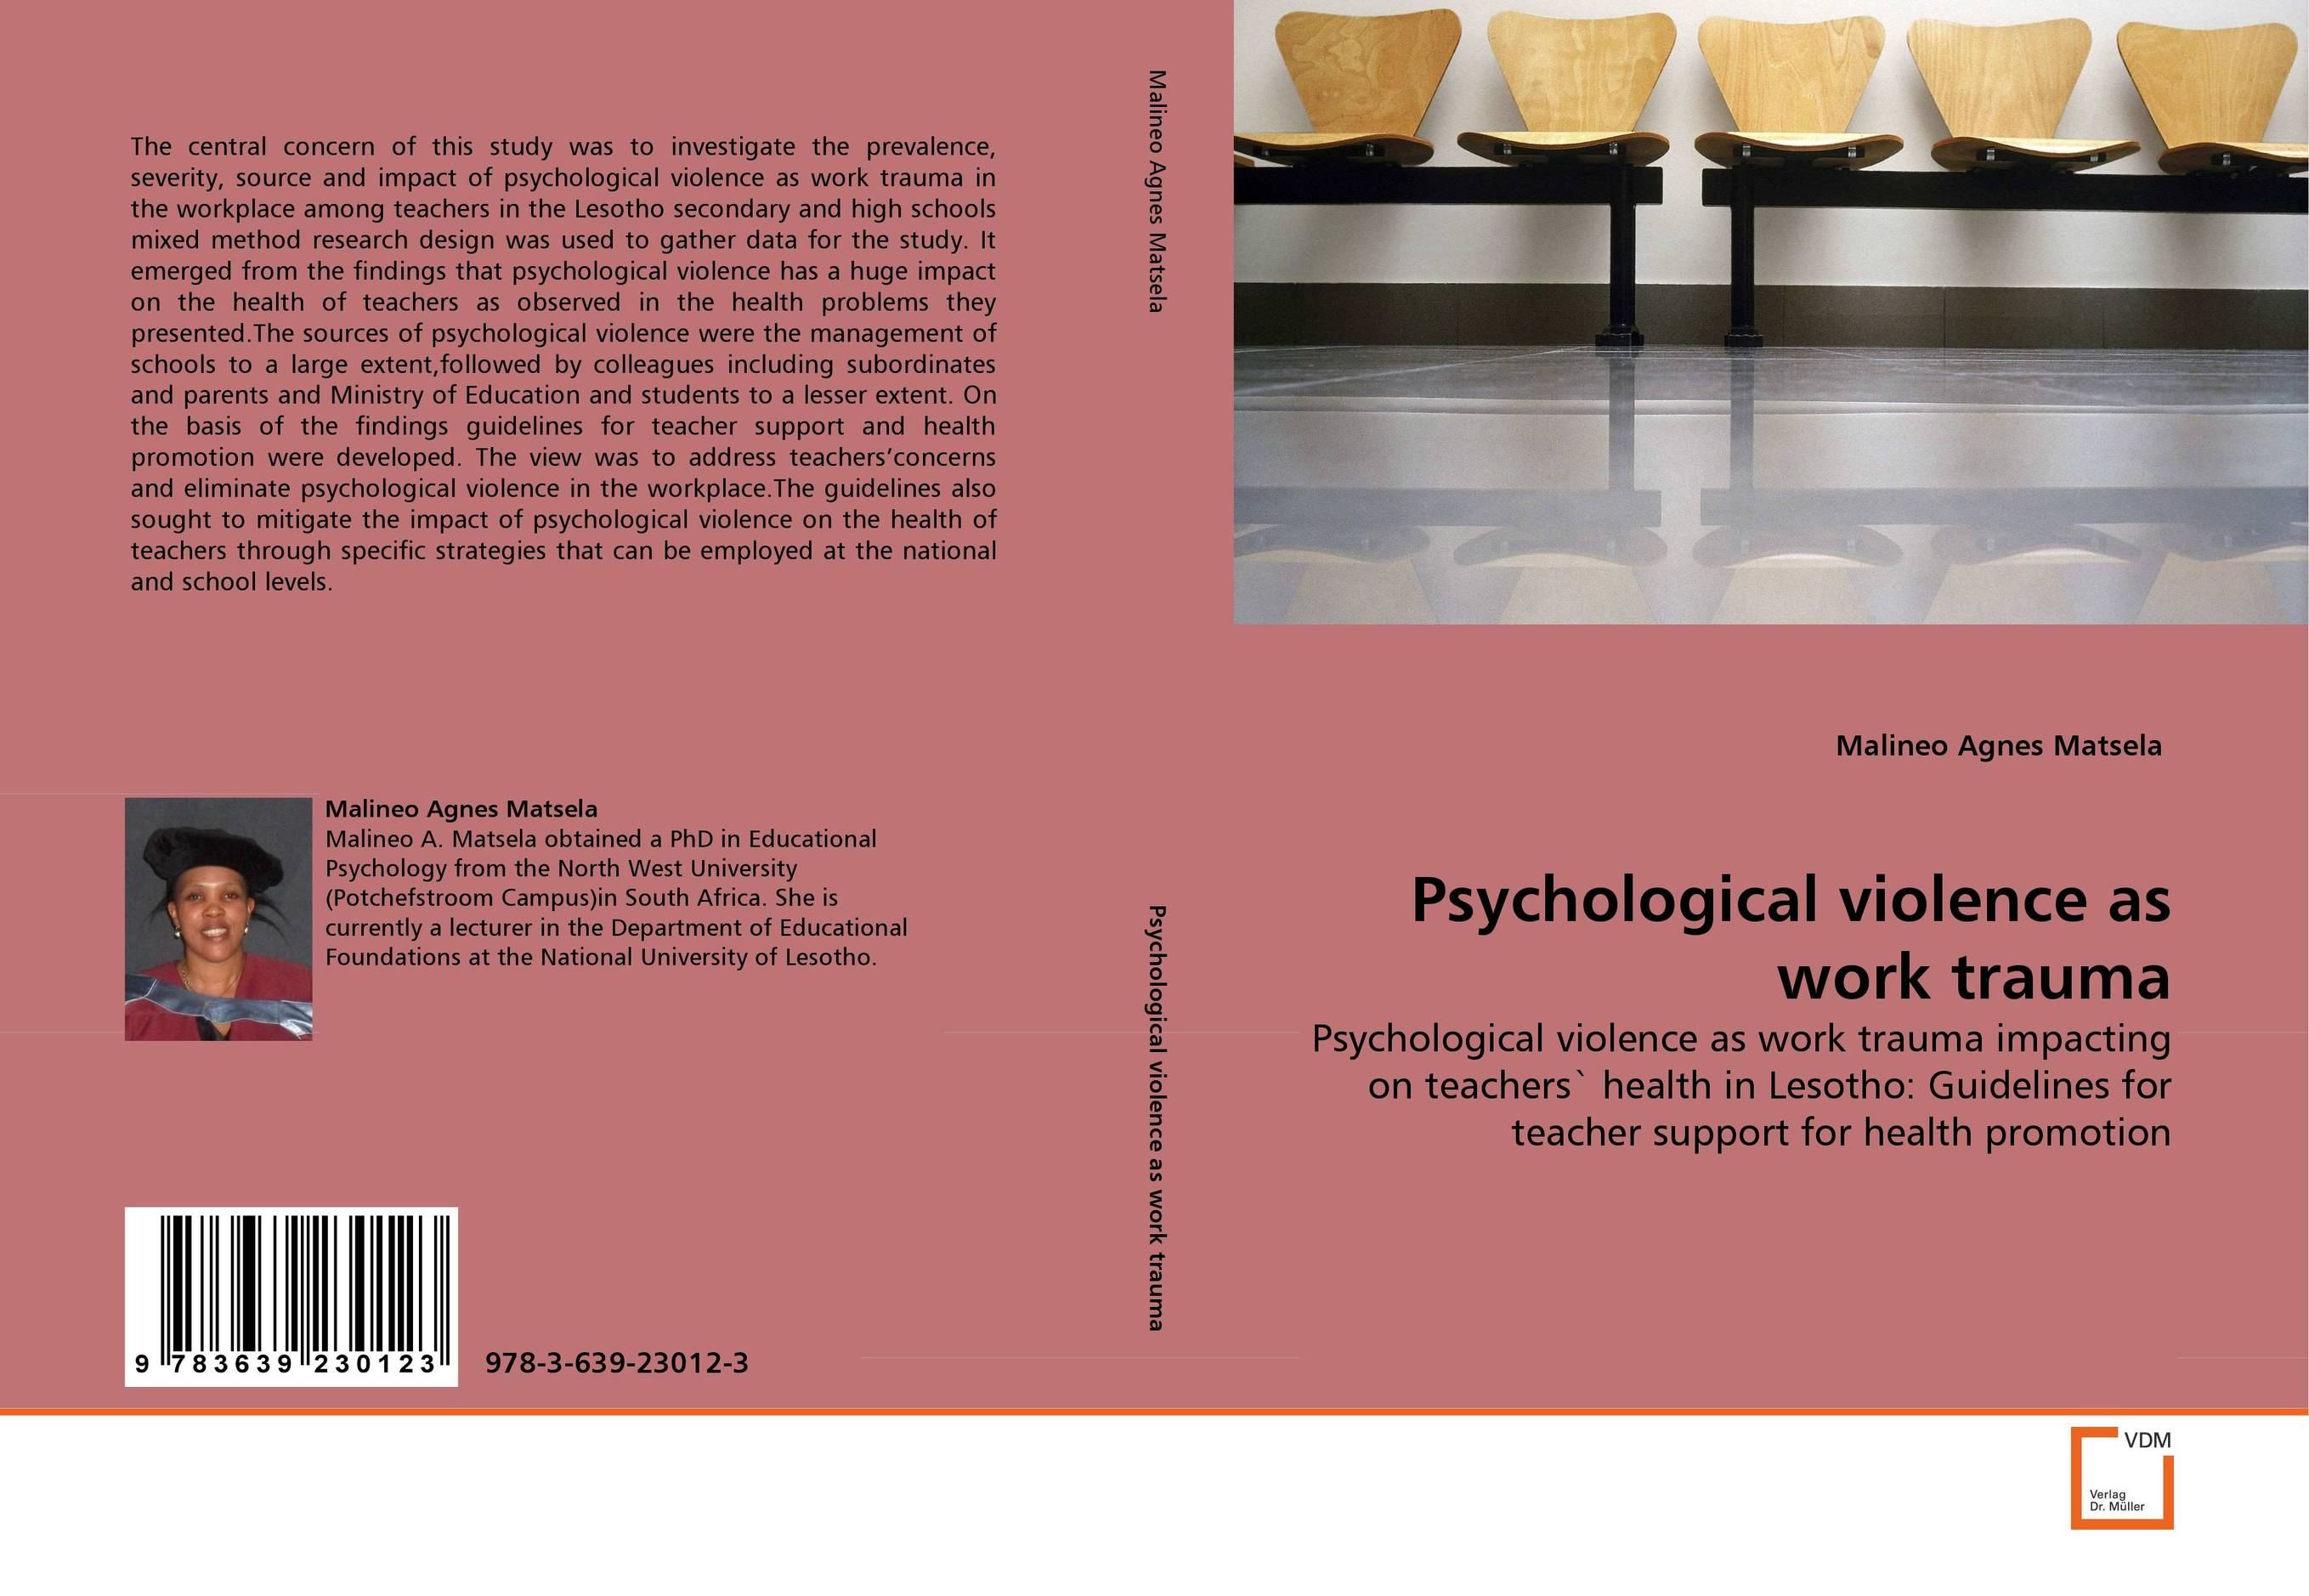 Psychological violence as work trauma  fritz ilongo workplace bullying as psychological violence in tertiary institutions